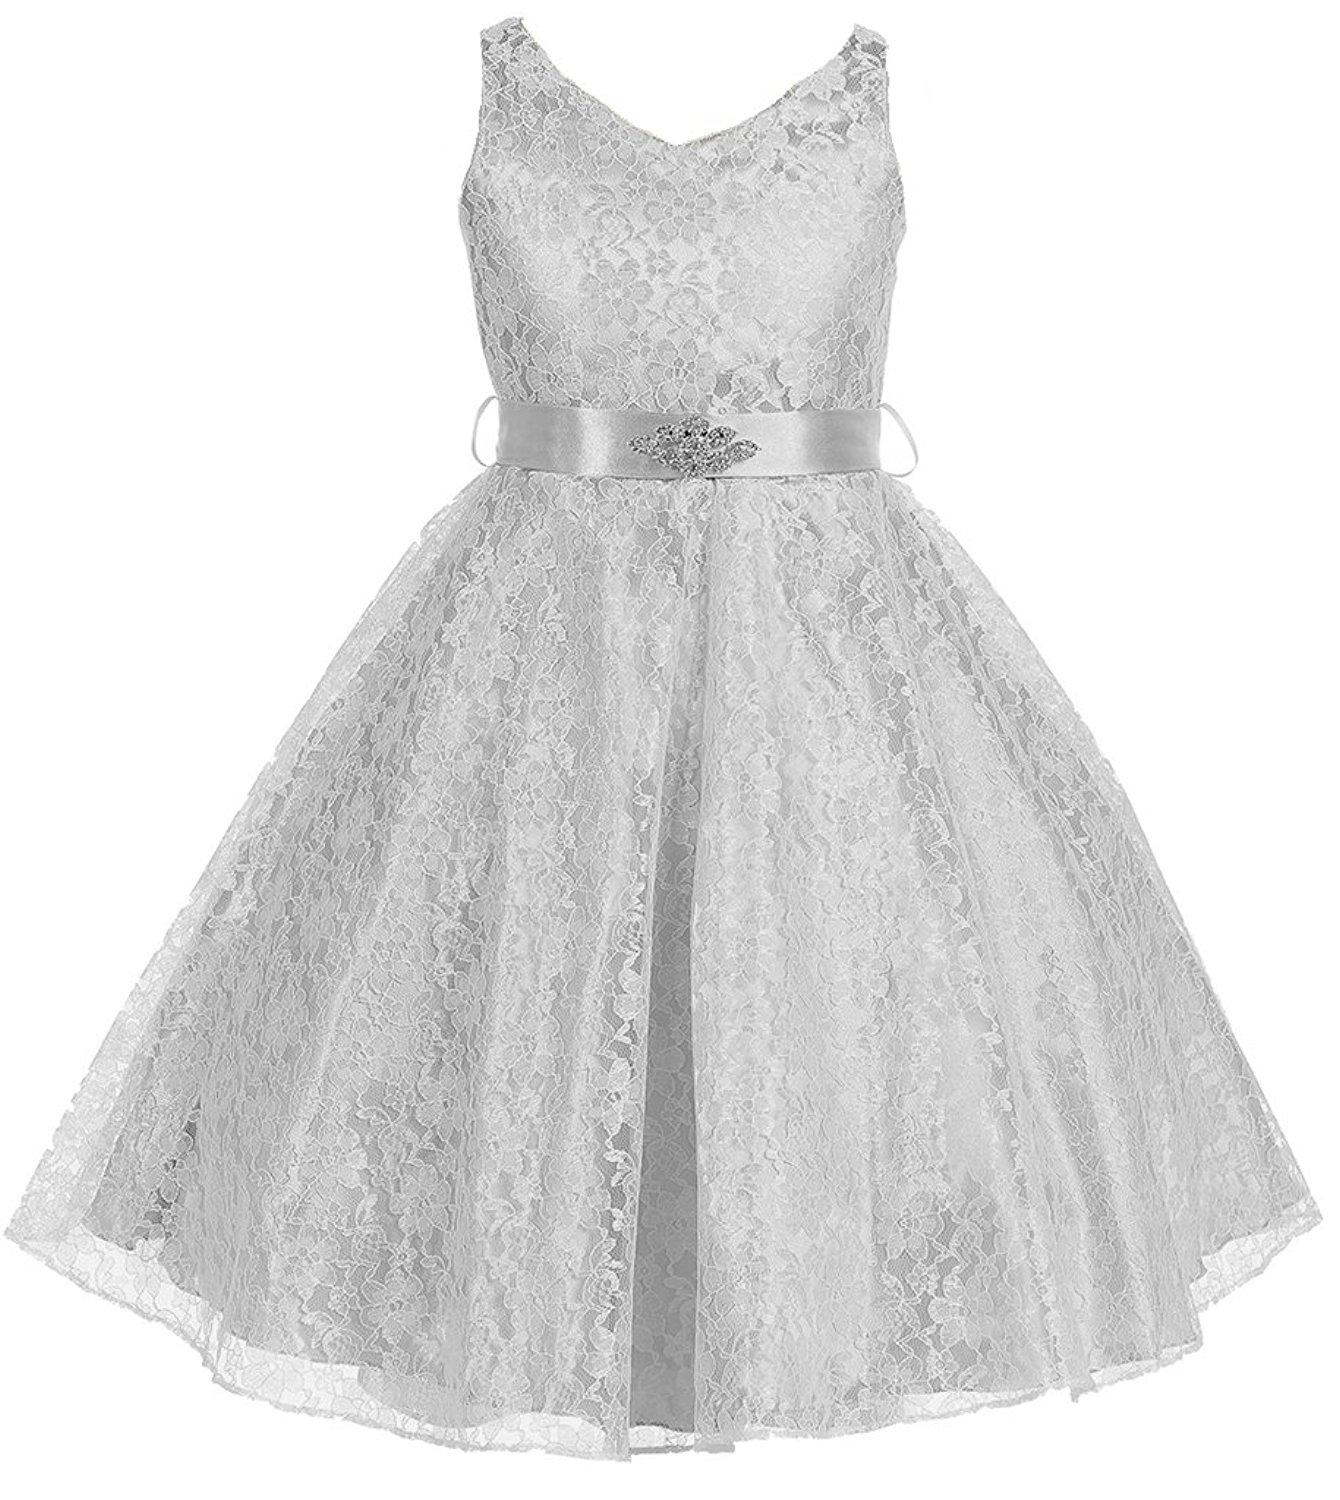 Akidress Lace Floral Pattern Flower Girl Dress For Little Girl